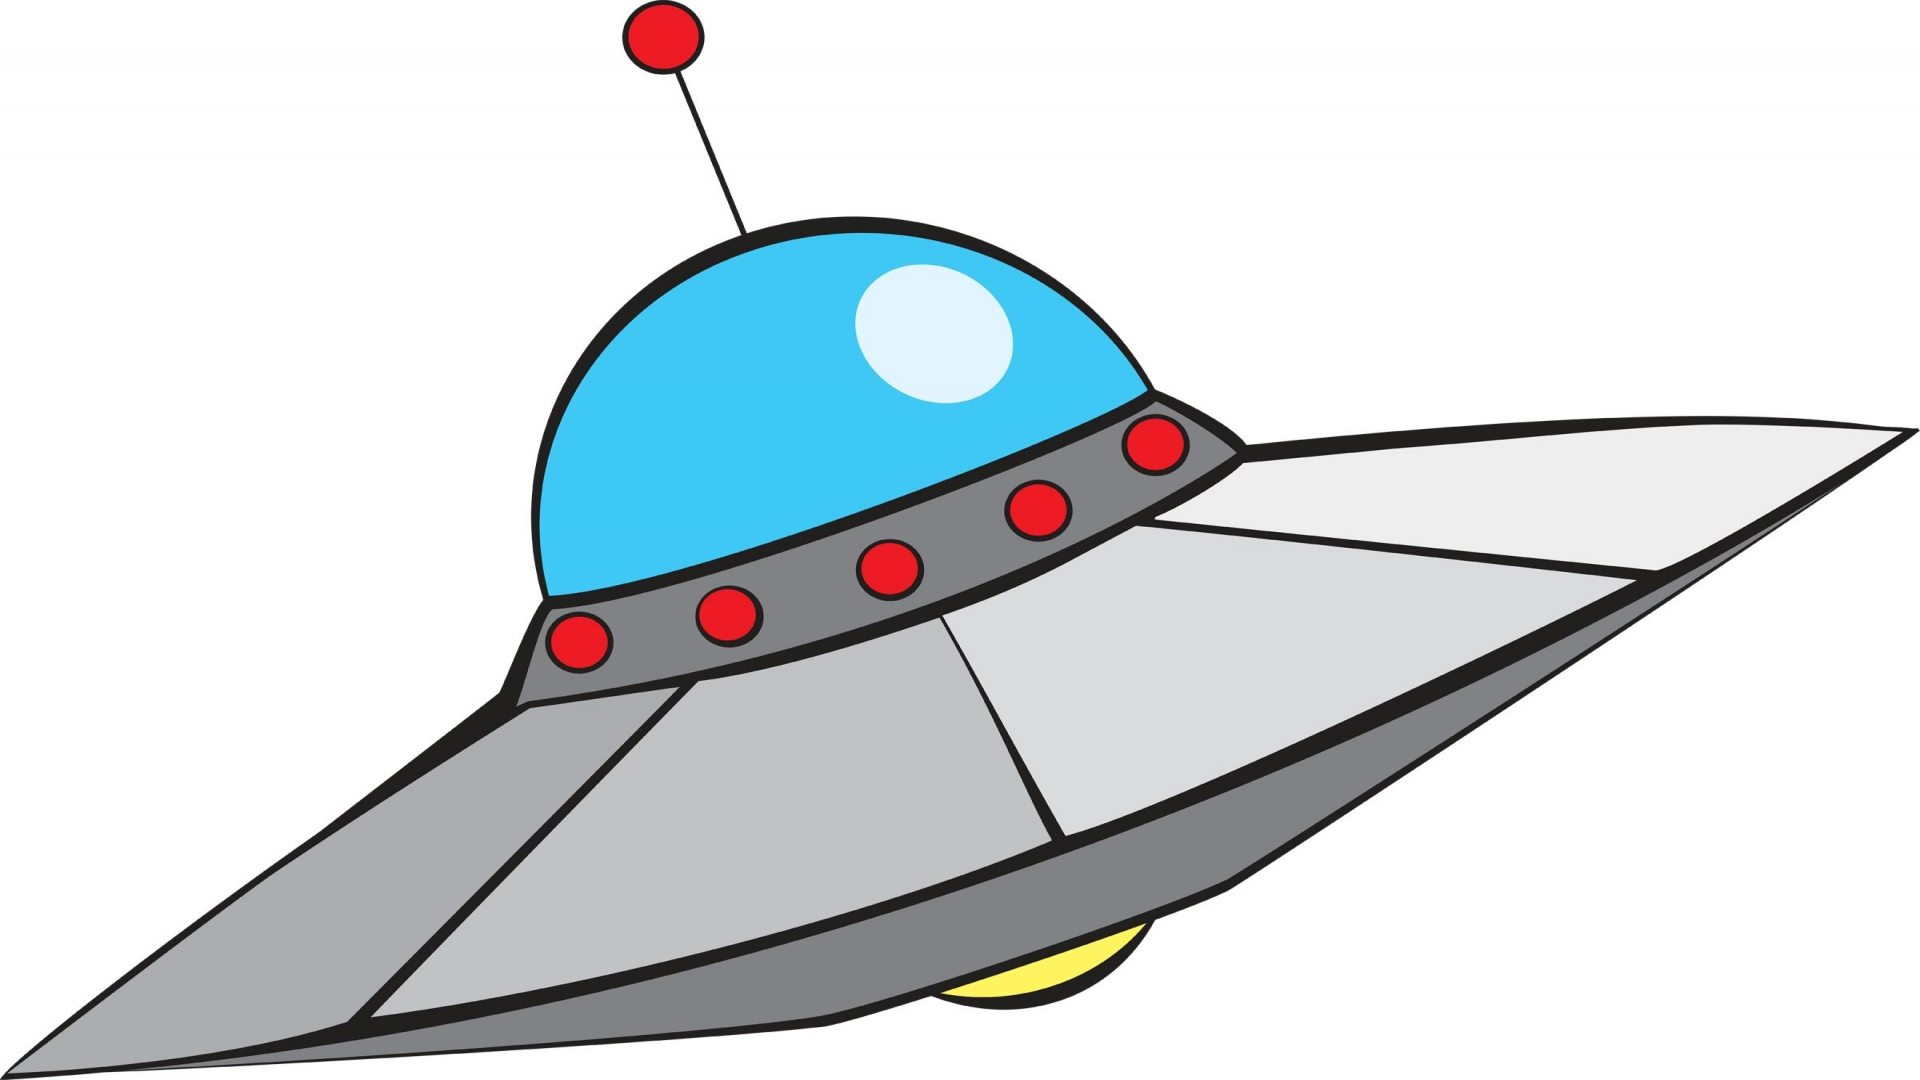 Space ship at getdrawings. Spaceship clipart svg transparent stock